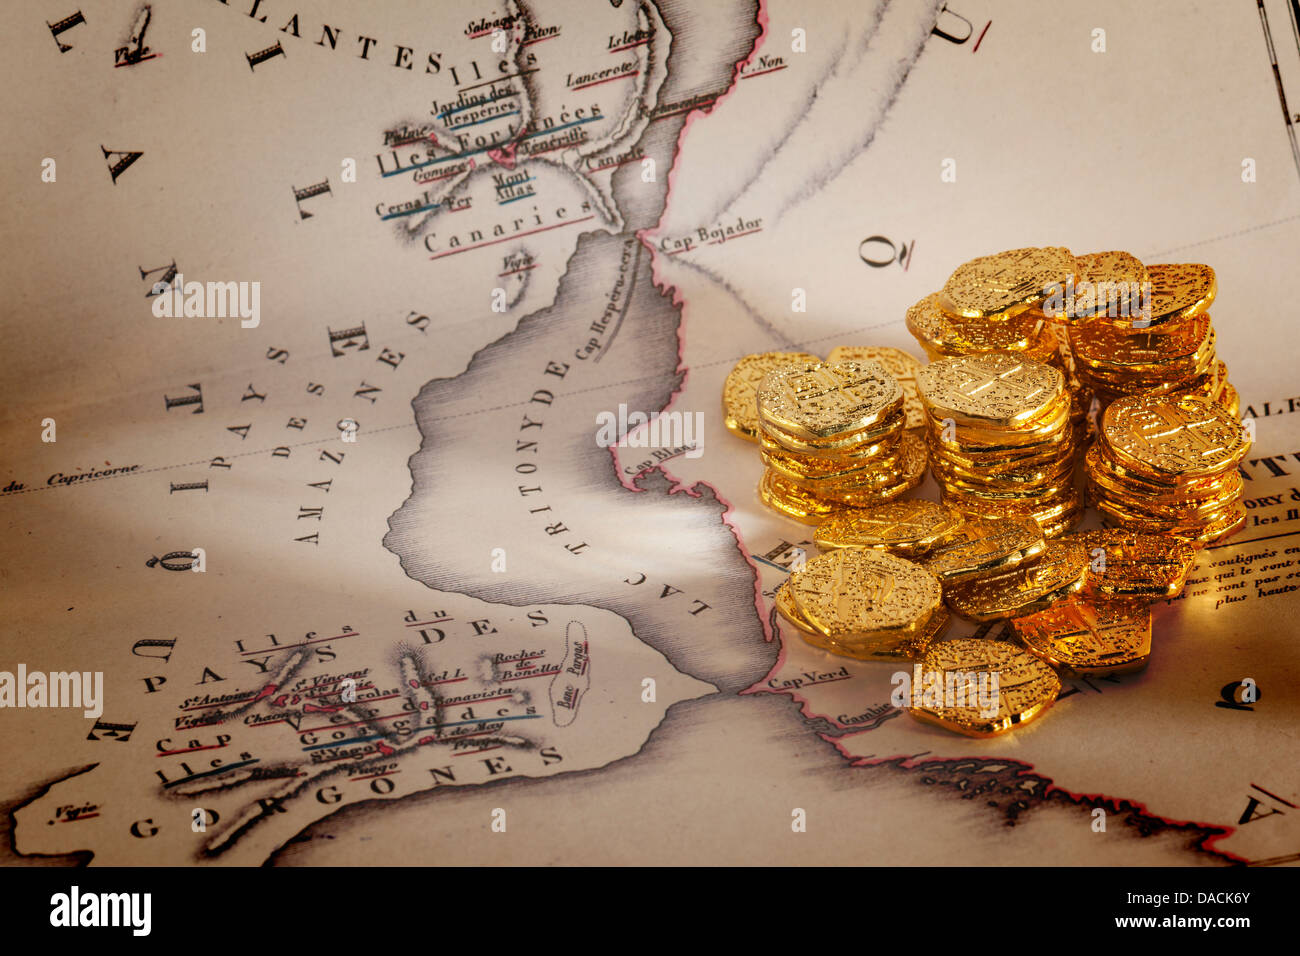 Doubloons and Treasure Map - Old map of Atlantis and a pile of gold doubloons. - Stock Image